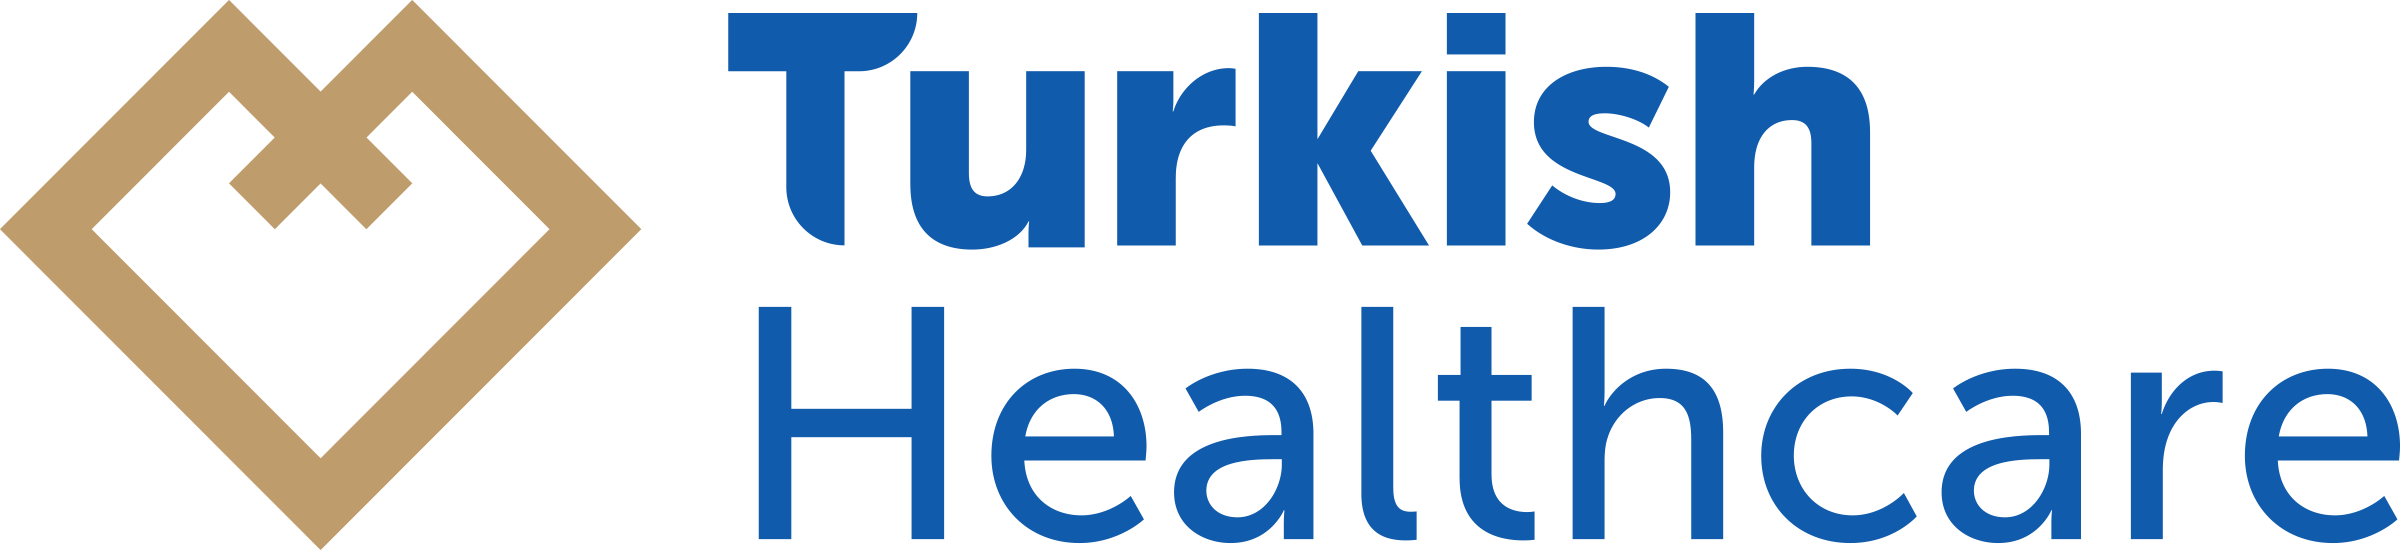 Turkish Healthcare - Dental products, pharmacy and medical equipments